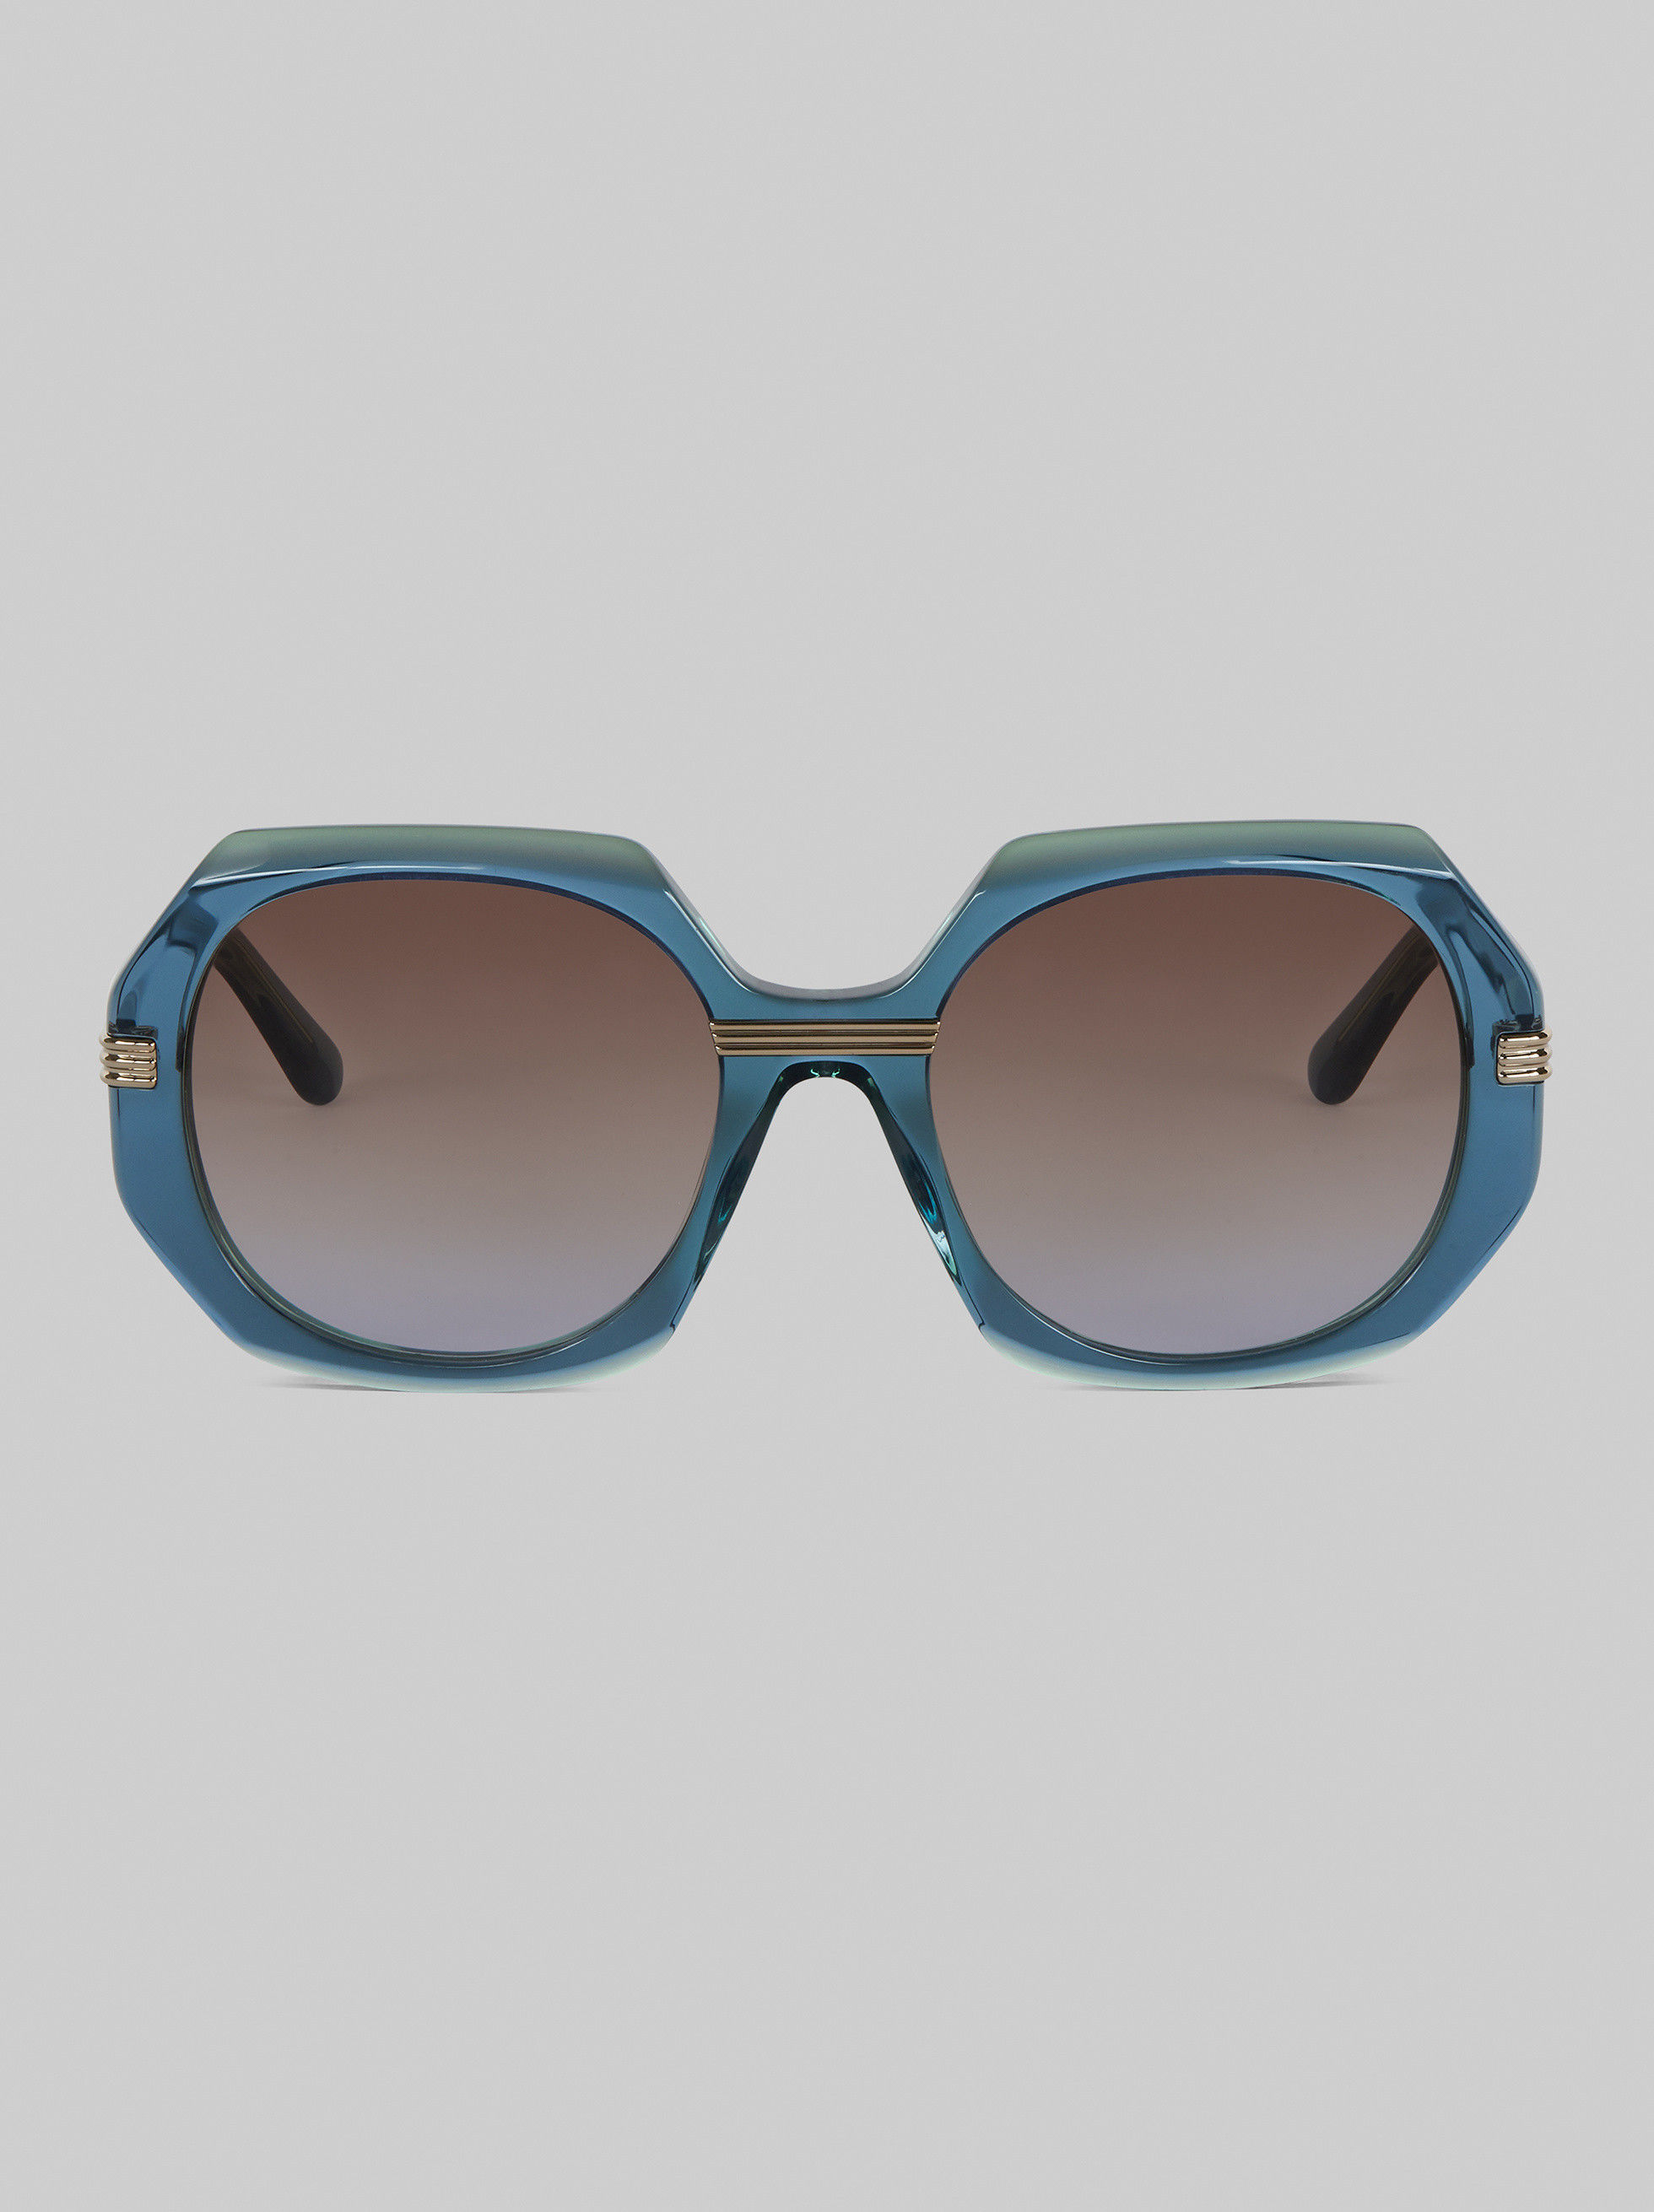 GEOMETRIC SUNGLASSES